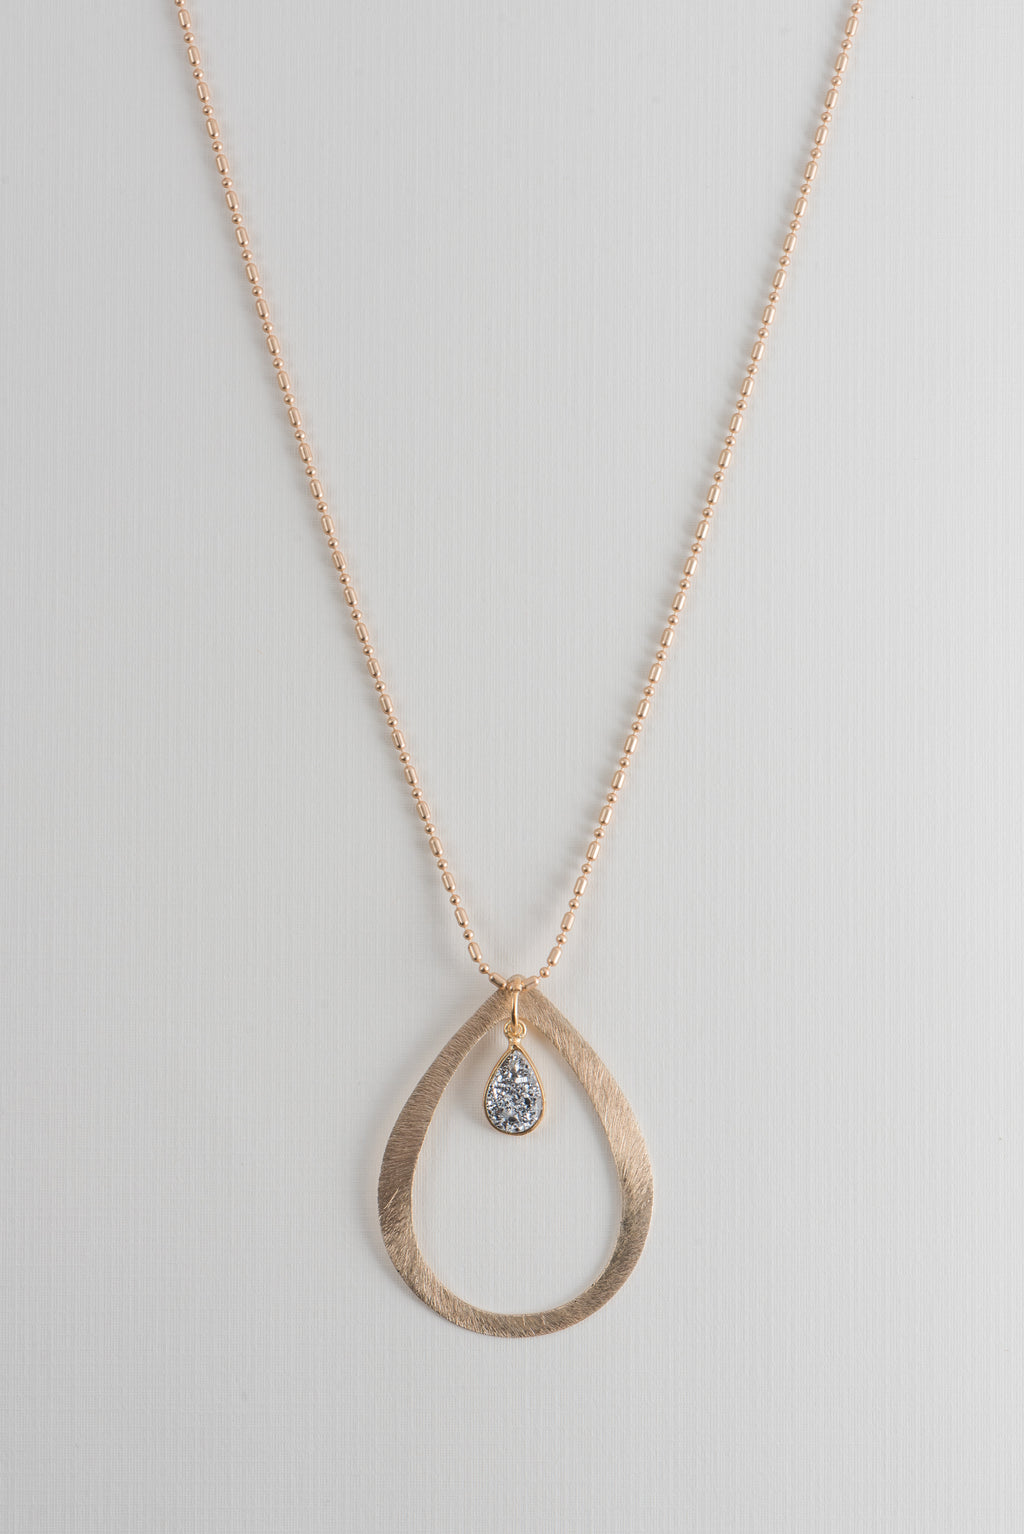 Brushed Gold Teardrop Necklace with Druzy